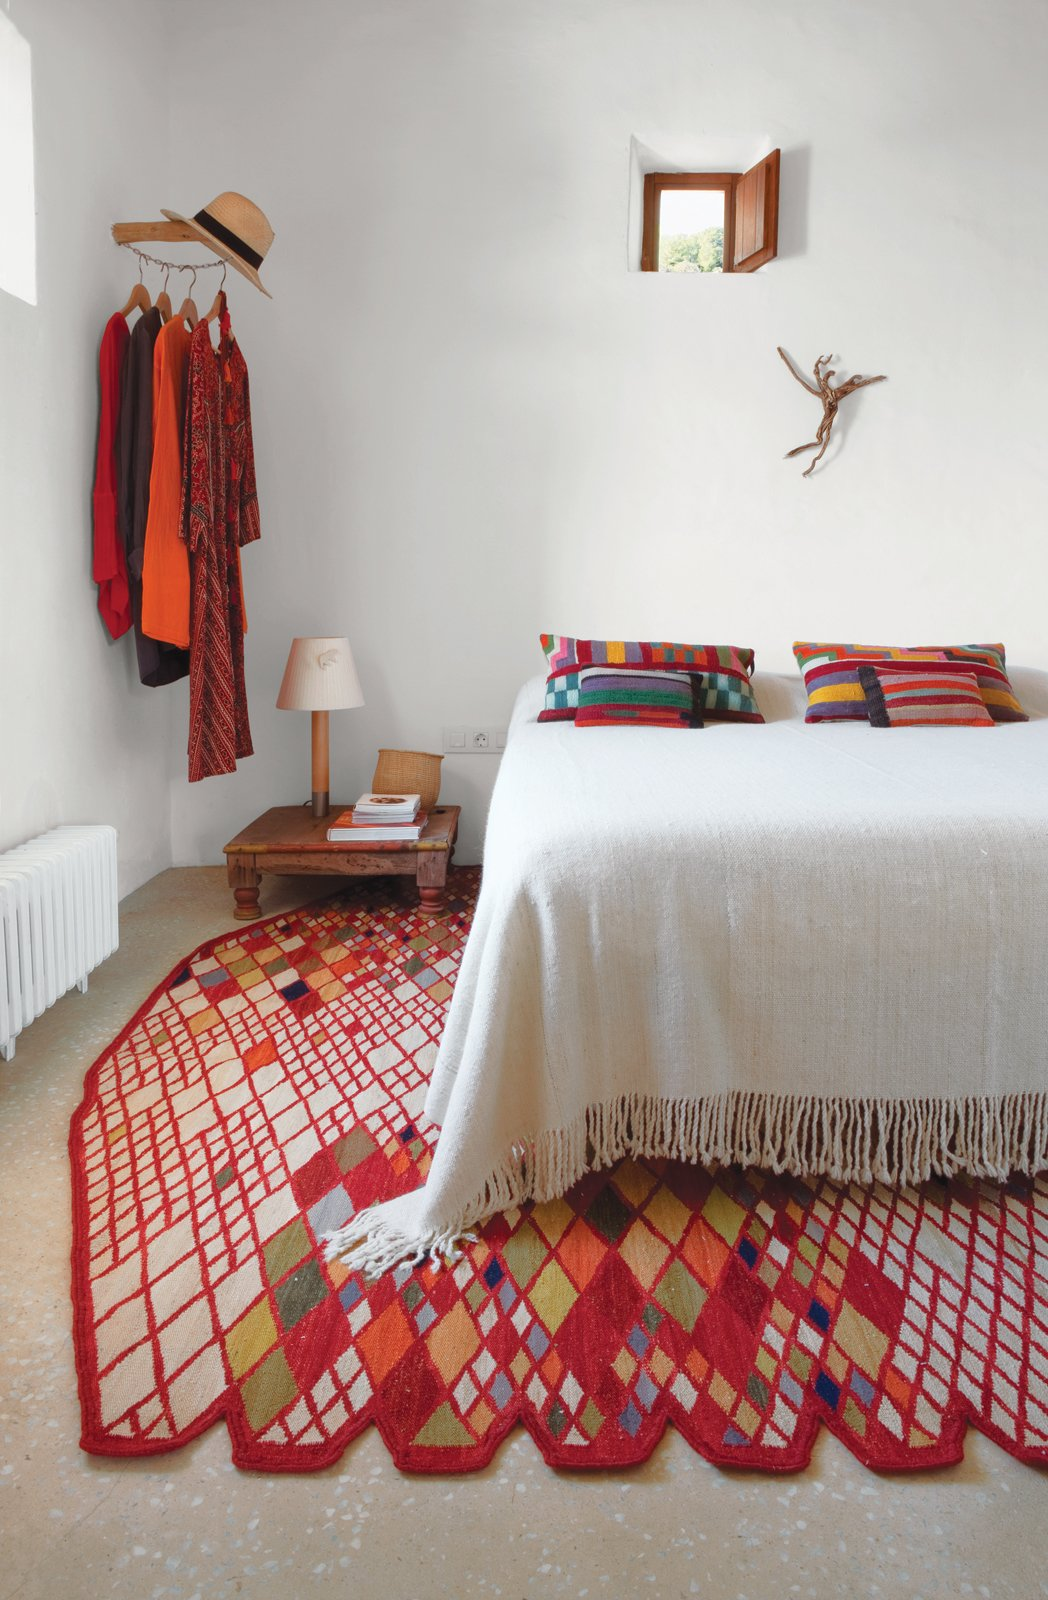 A Losanges rug by Ronan and Erwan Bouroullec, part of Marquina's 2011 collection, anchors the simple master bedroom of Nani Marquina's vacation home on Ibiza.  How-To: Patterned Rugs by Dora Vanette from Creative Bedside Tables